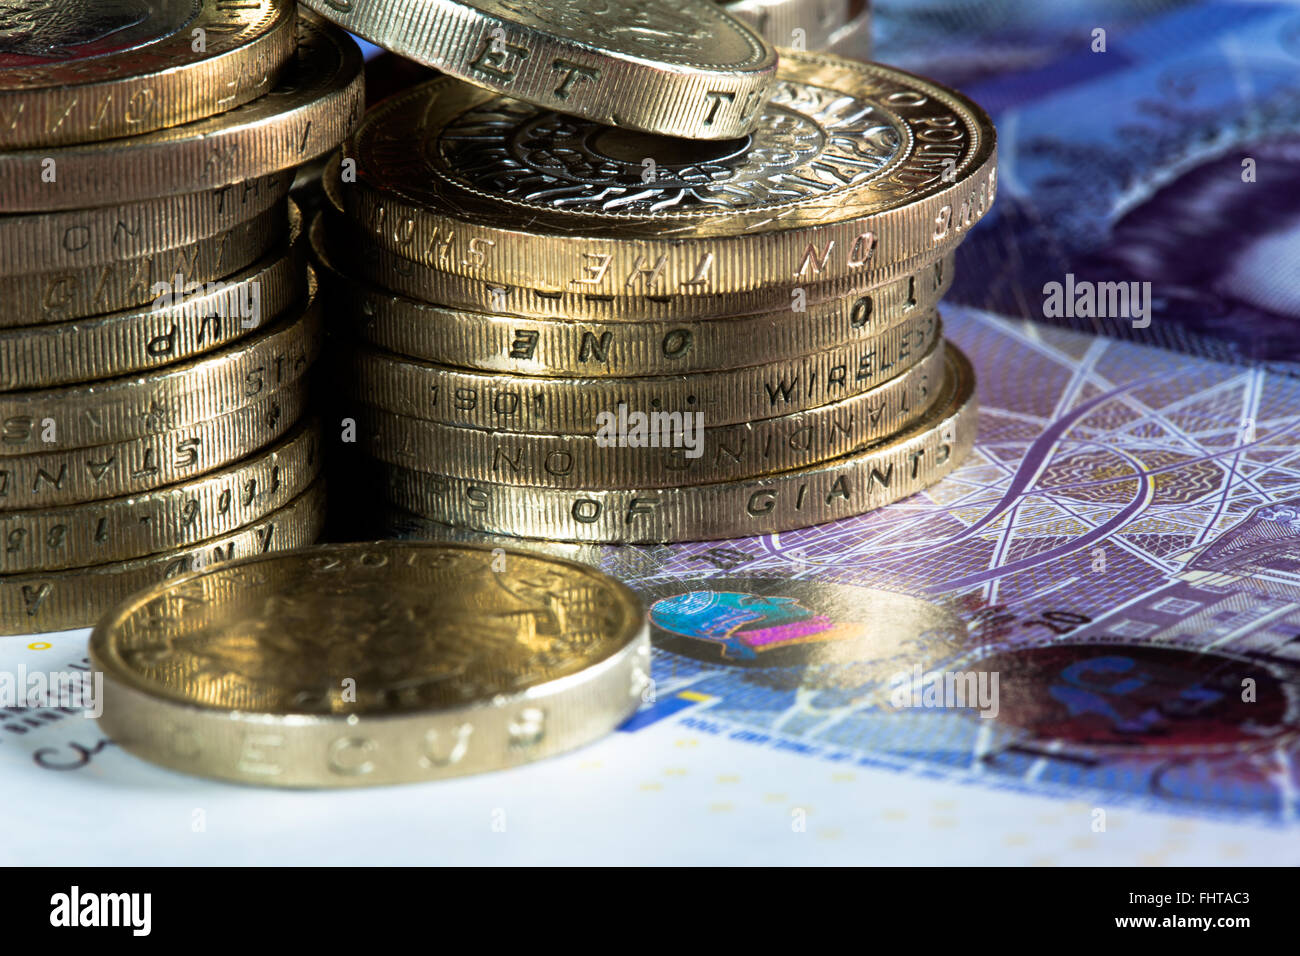 A macro image of coins and notes of the British Realm. Specifically Two Pound coins, One Pound coins and 20 Pound - Stock Image